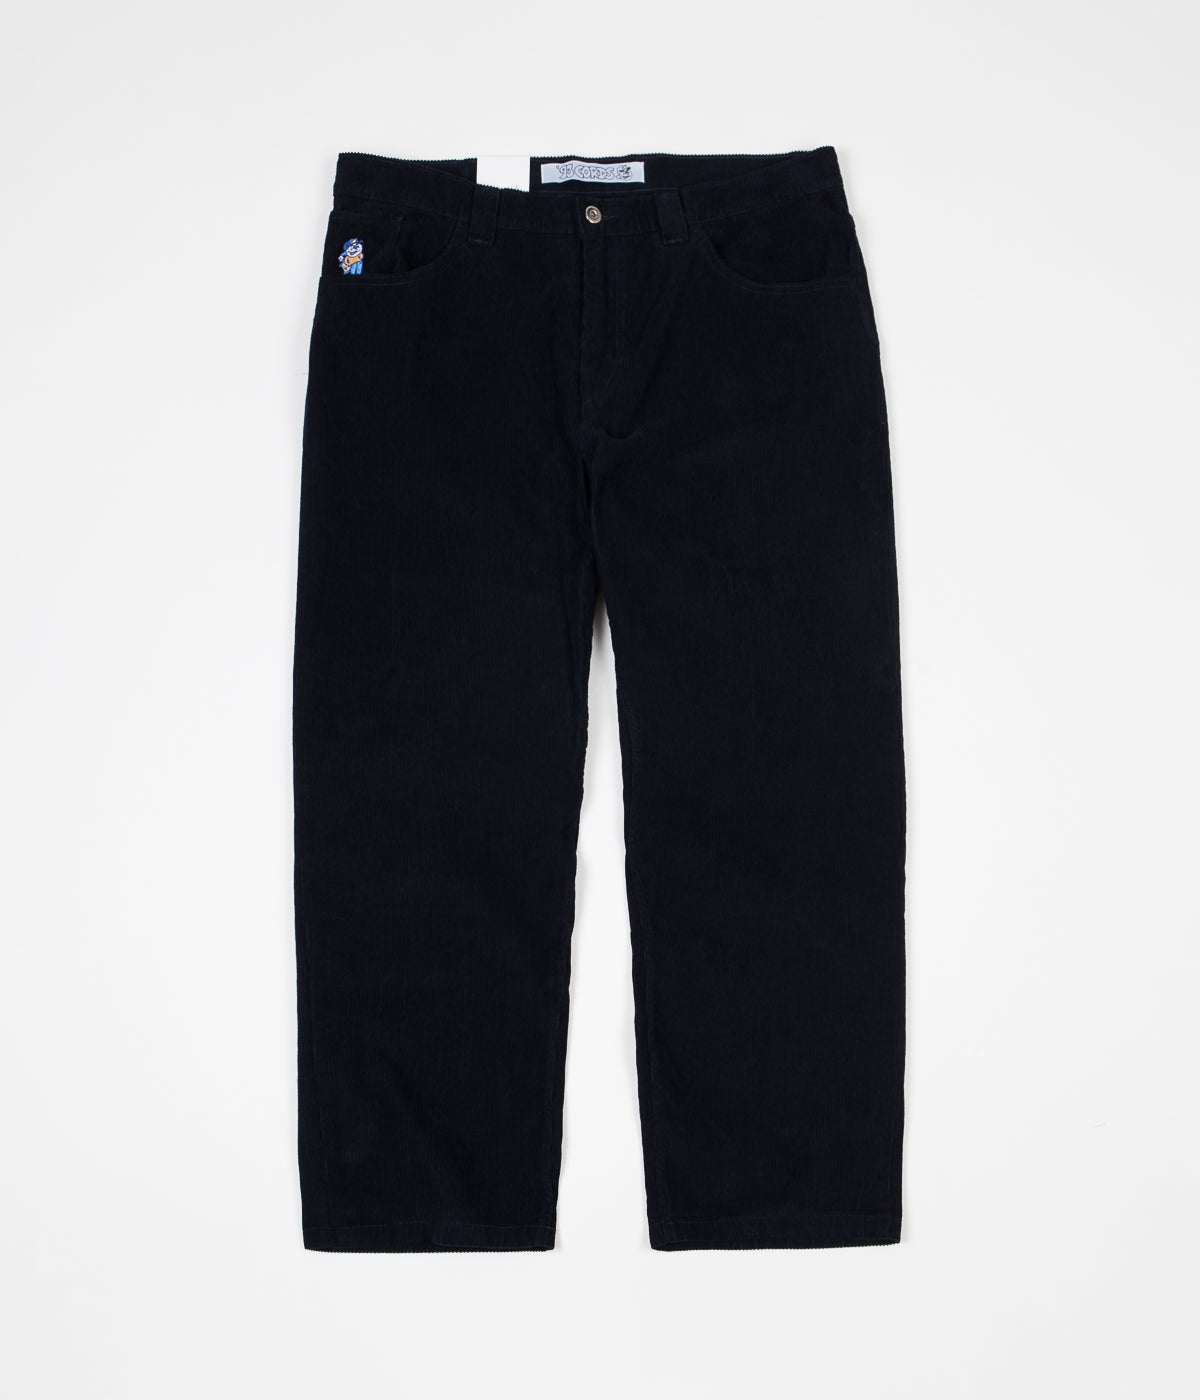 Polar 93 Cord Trousers - Navy